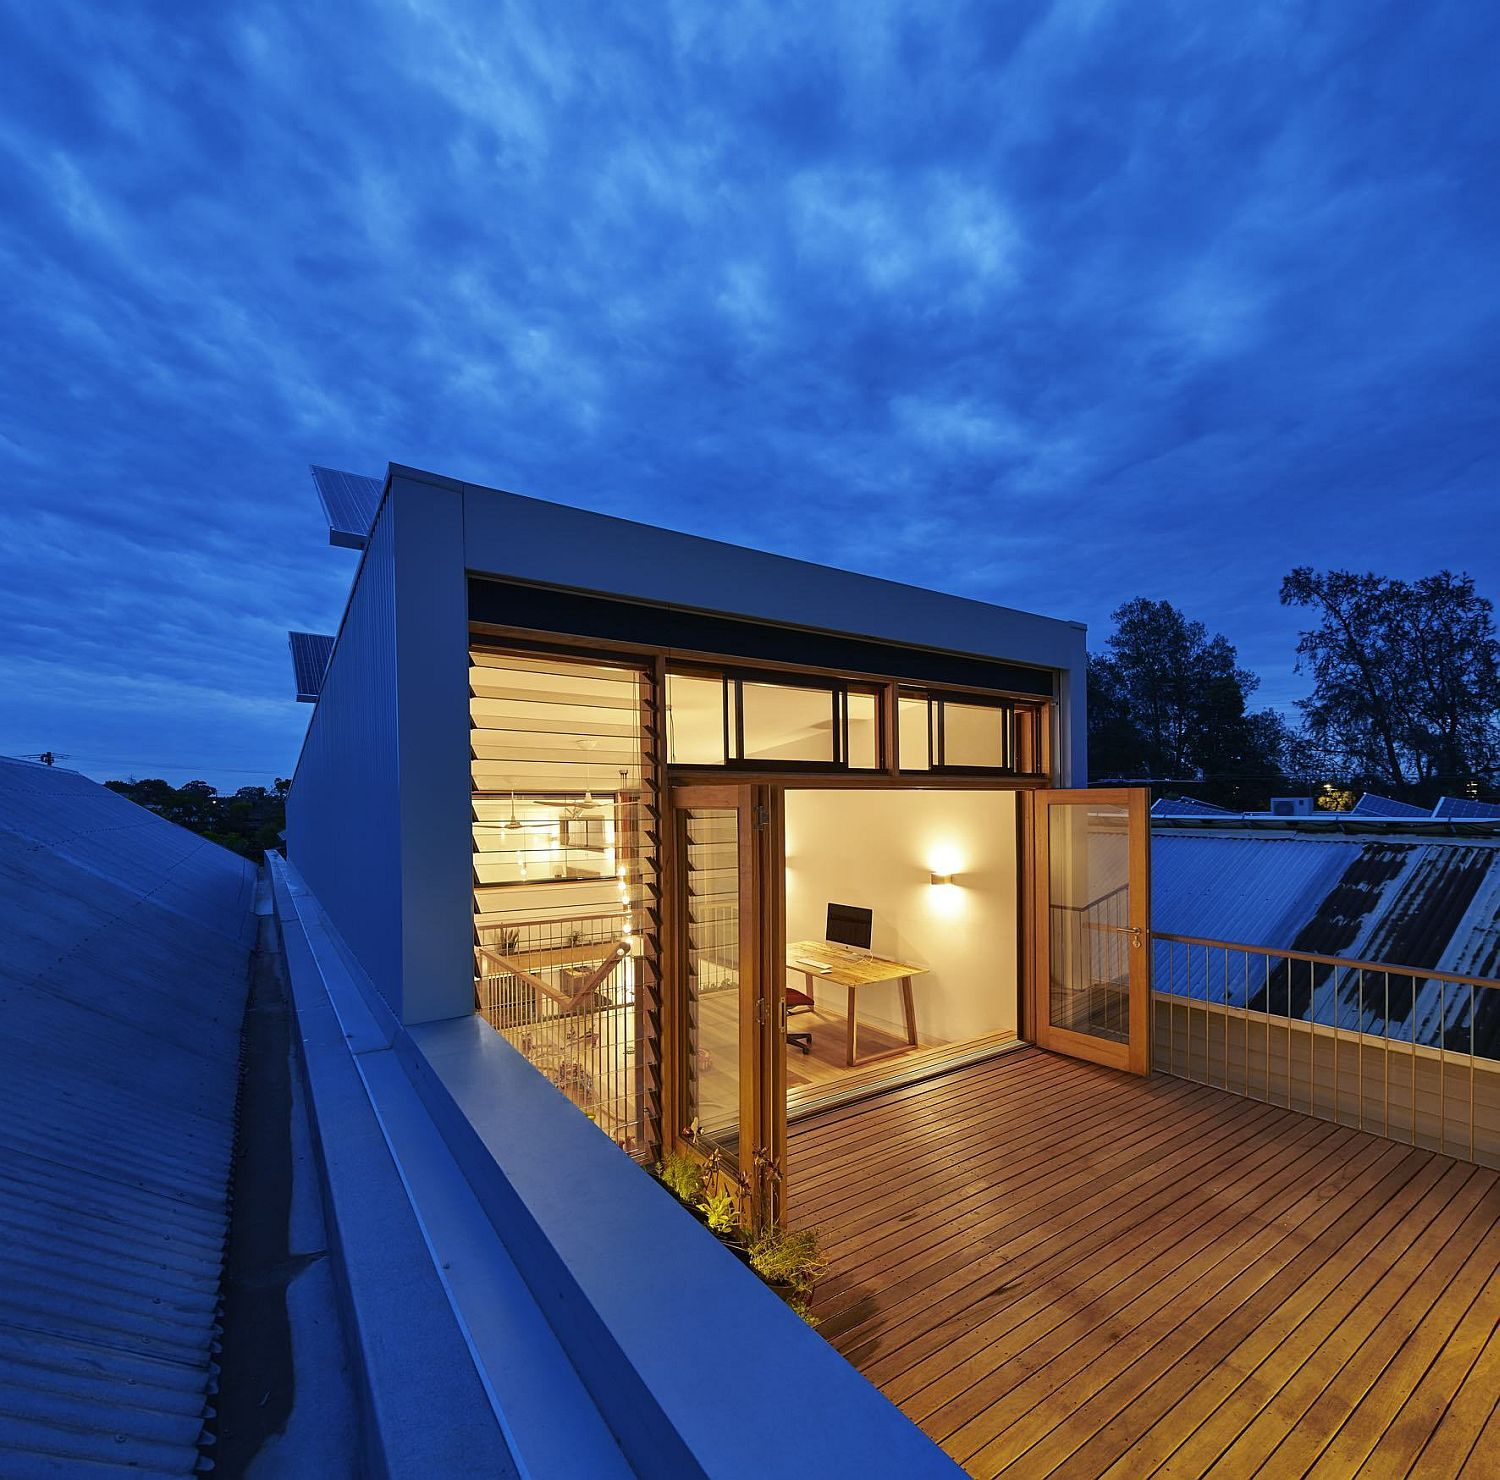 Studio-on-the-top-floor-leading-to-the-wooden-deck-outside